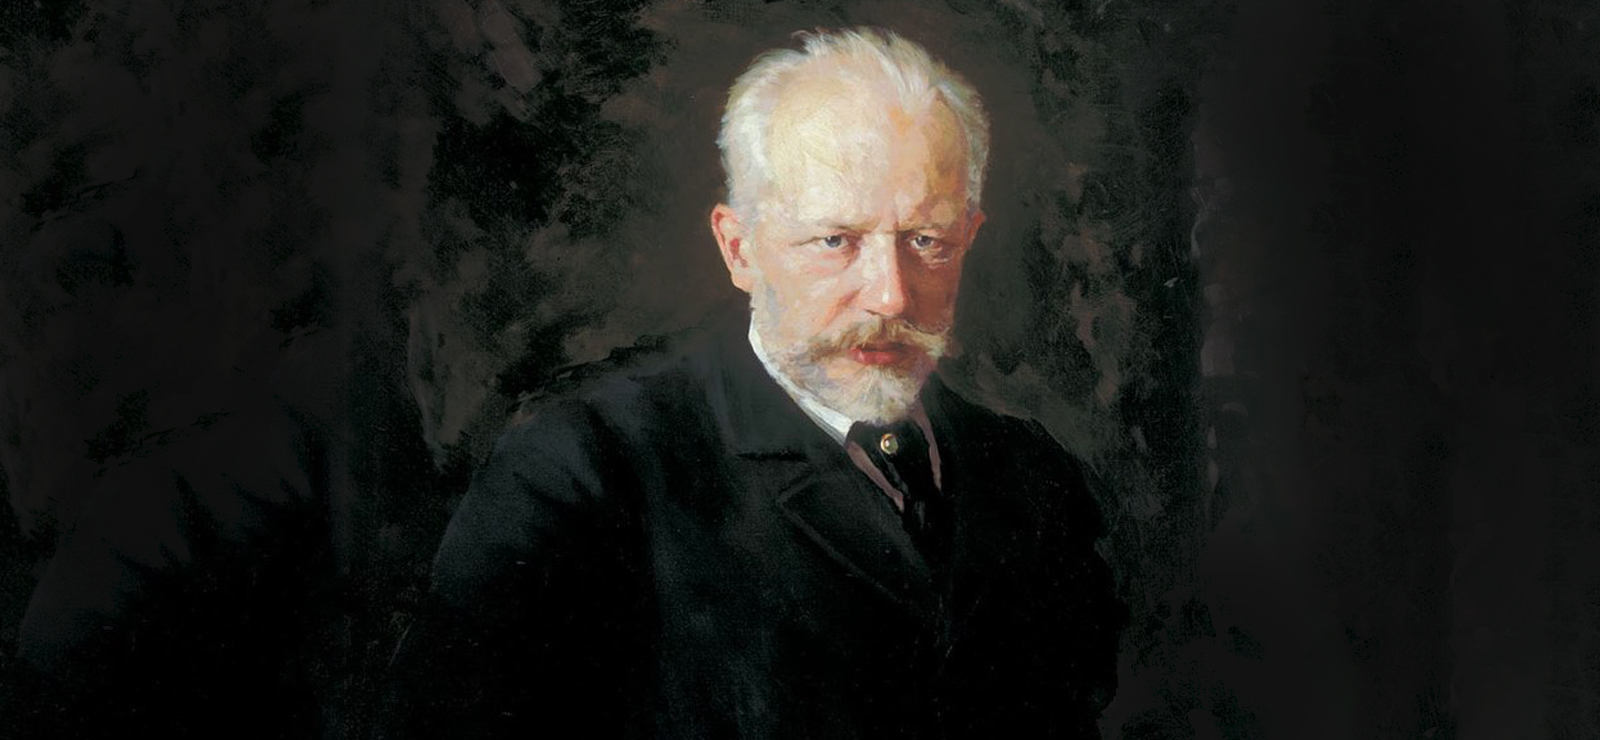 [Program TwoAmateurs and Professionals] Portrait of Pyotr Ilyich Tchaikovsky by Nikolai Kuznetsov; Wikimedia Commons